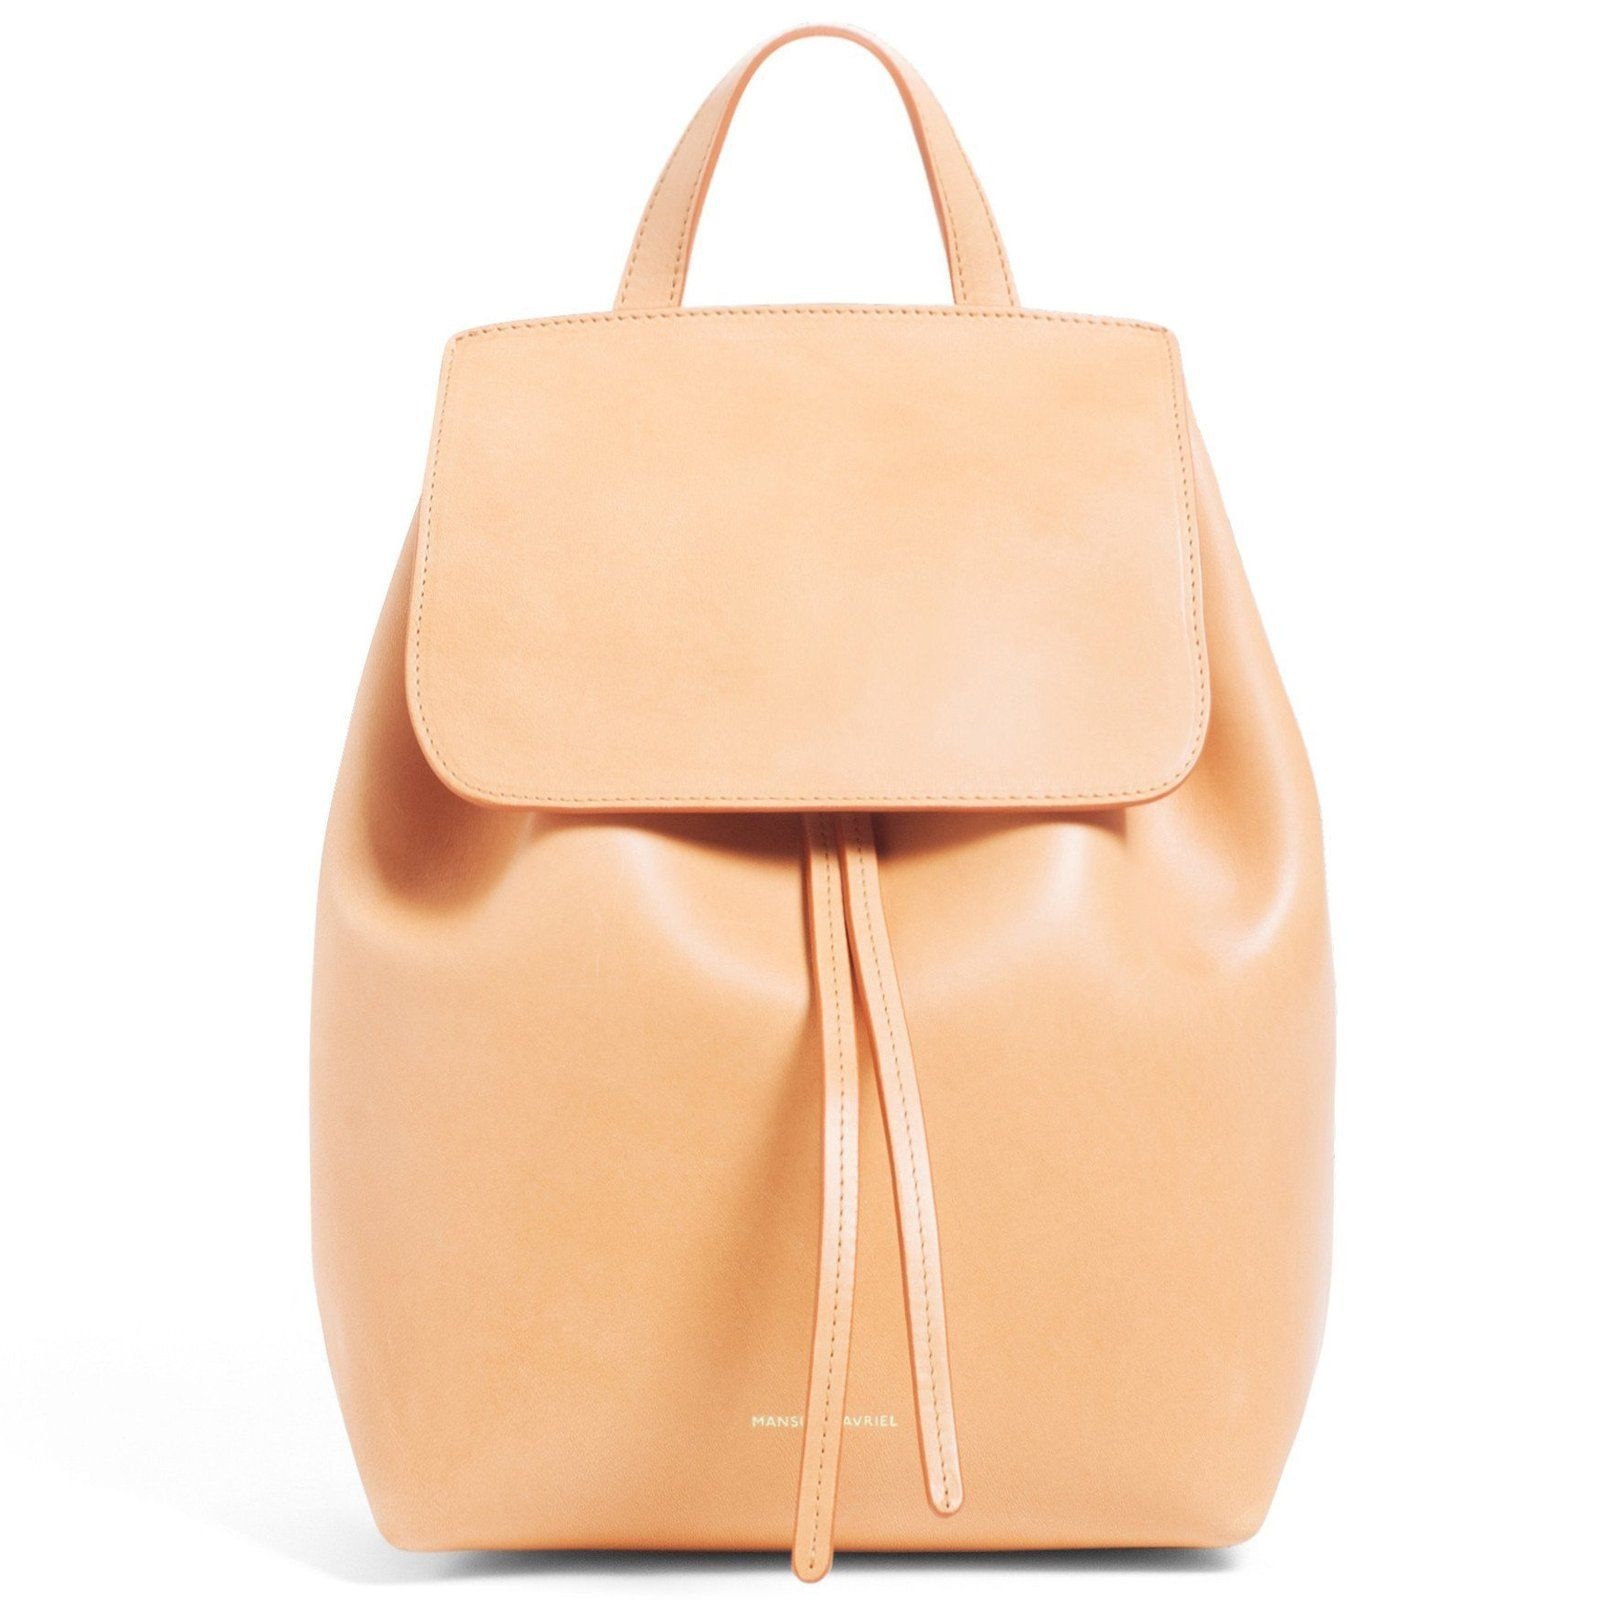 Mini backpack Leather backpack Small leather Backpack Drawstring leather backpack Leather backpack women Brown leather backpack purse